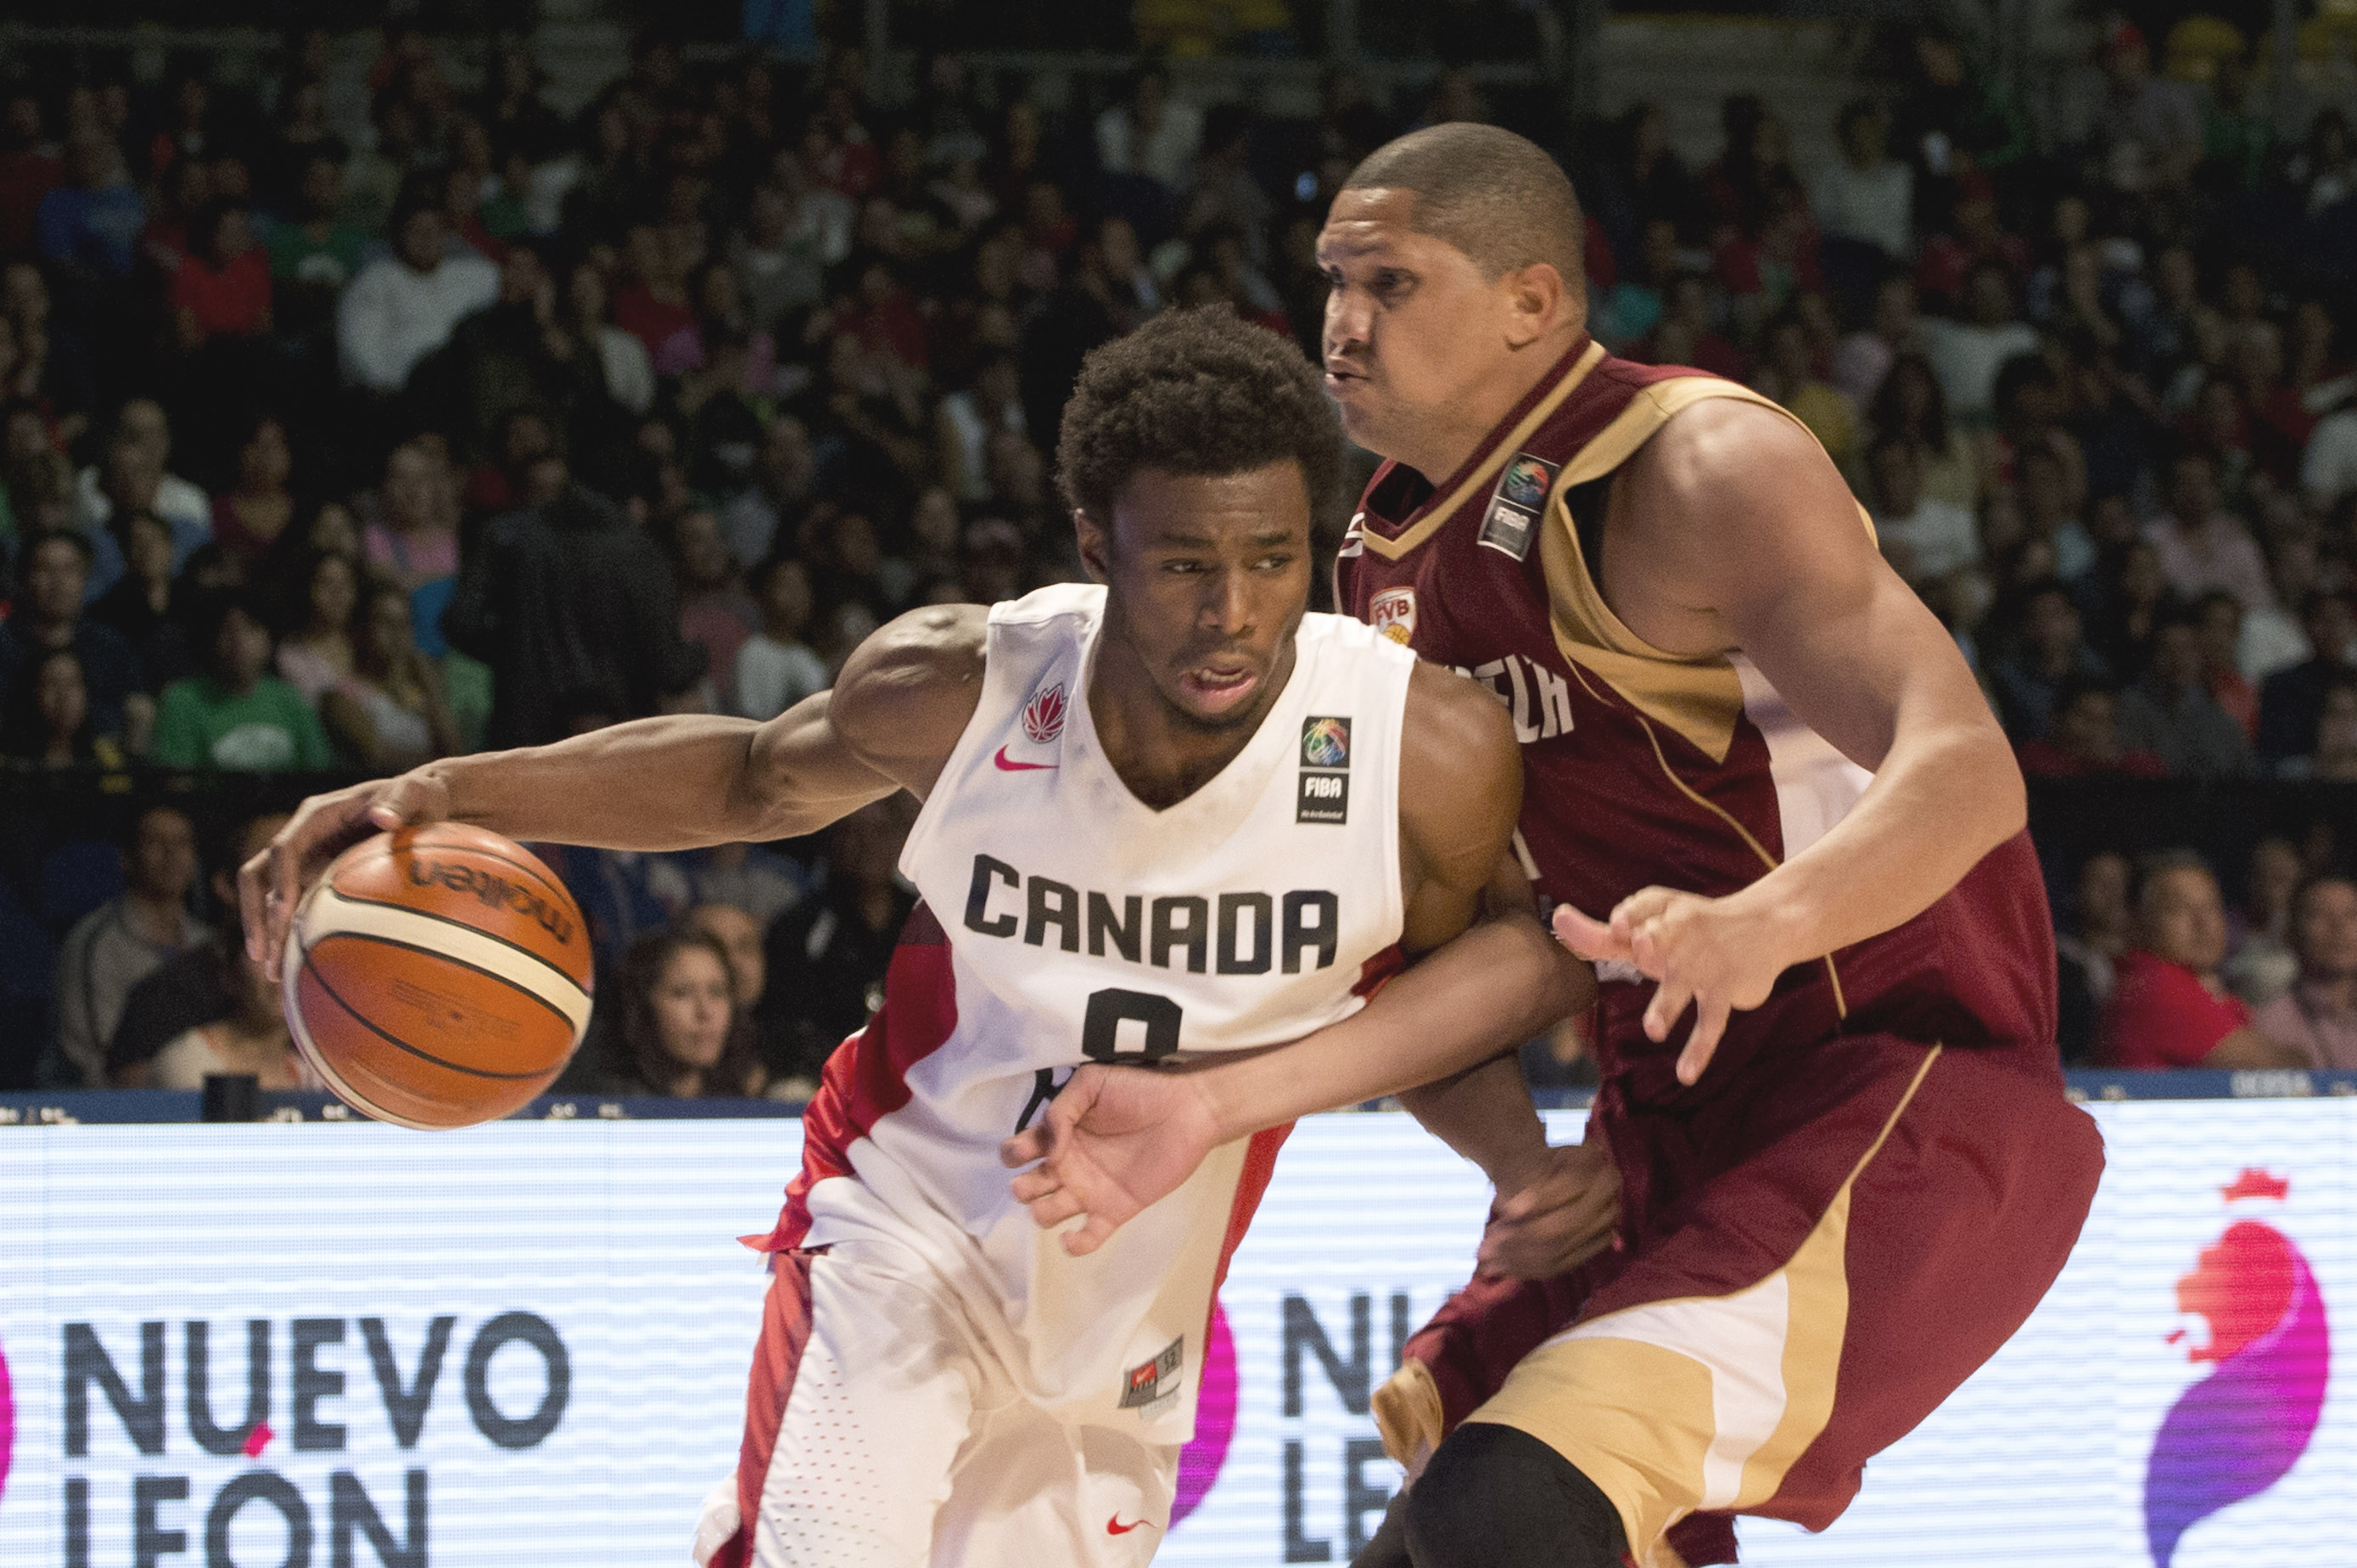 Canada's Andrew Wiggins, left, controls the ball under pressure from Venezuela's Miguel Marriaga during a FIBA Americas Championship basketball game in Mexico City, Thursday Sept. 3, 2015. (AP Photo/Eduardo Verdugo)